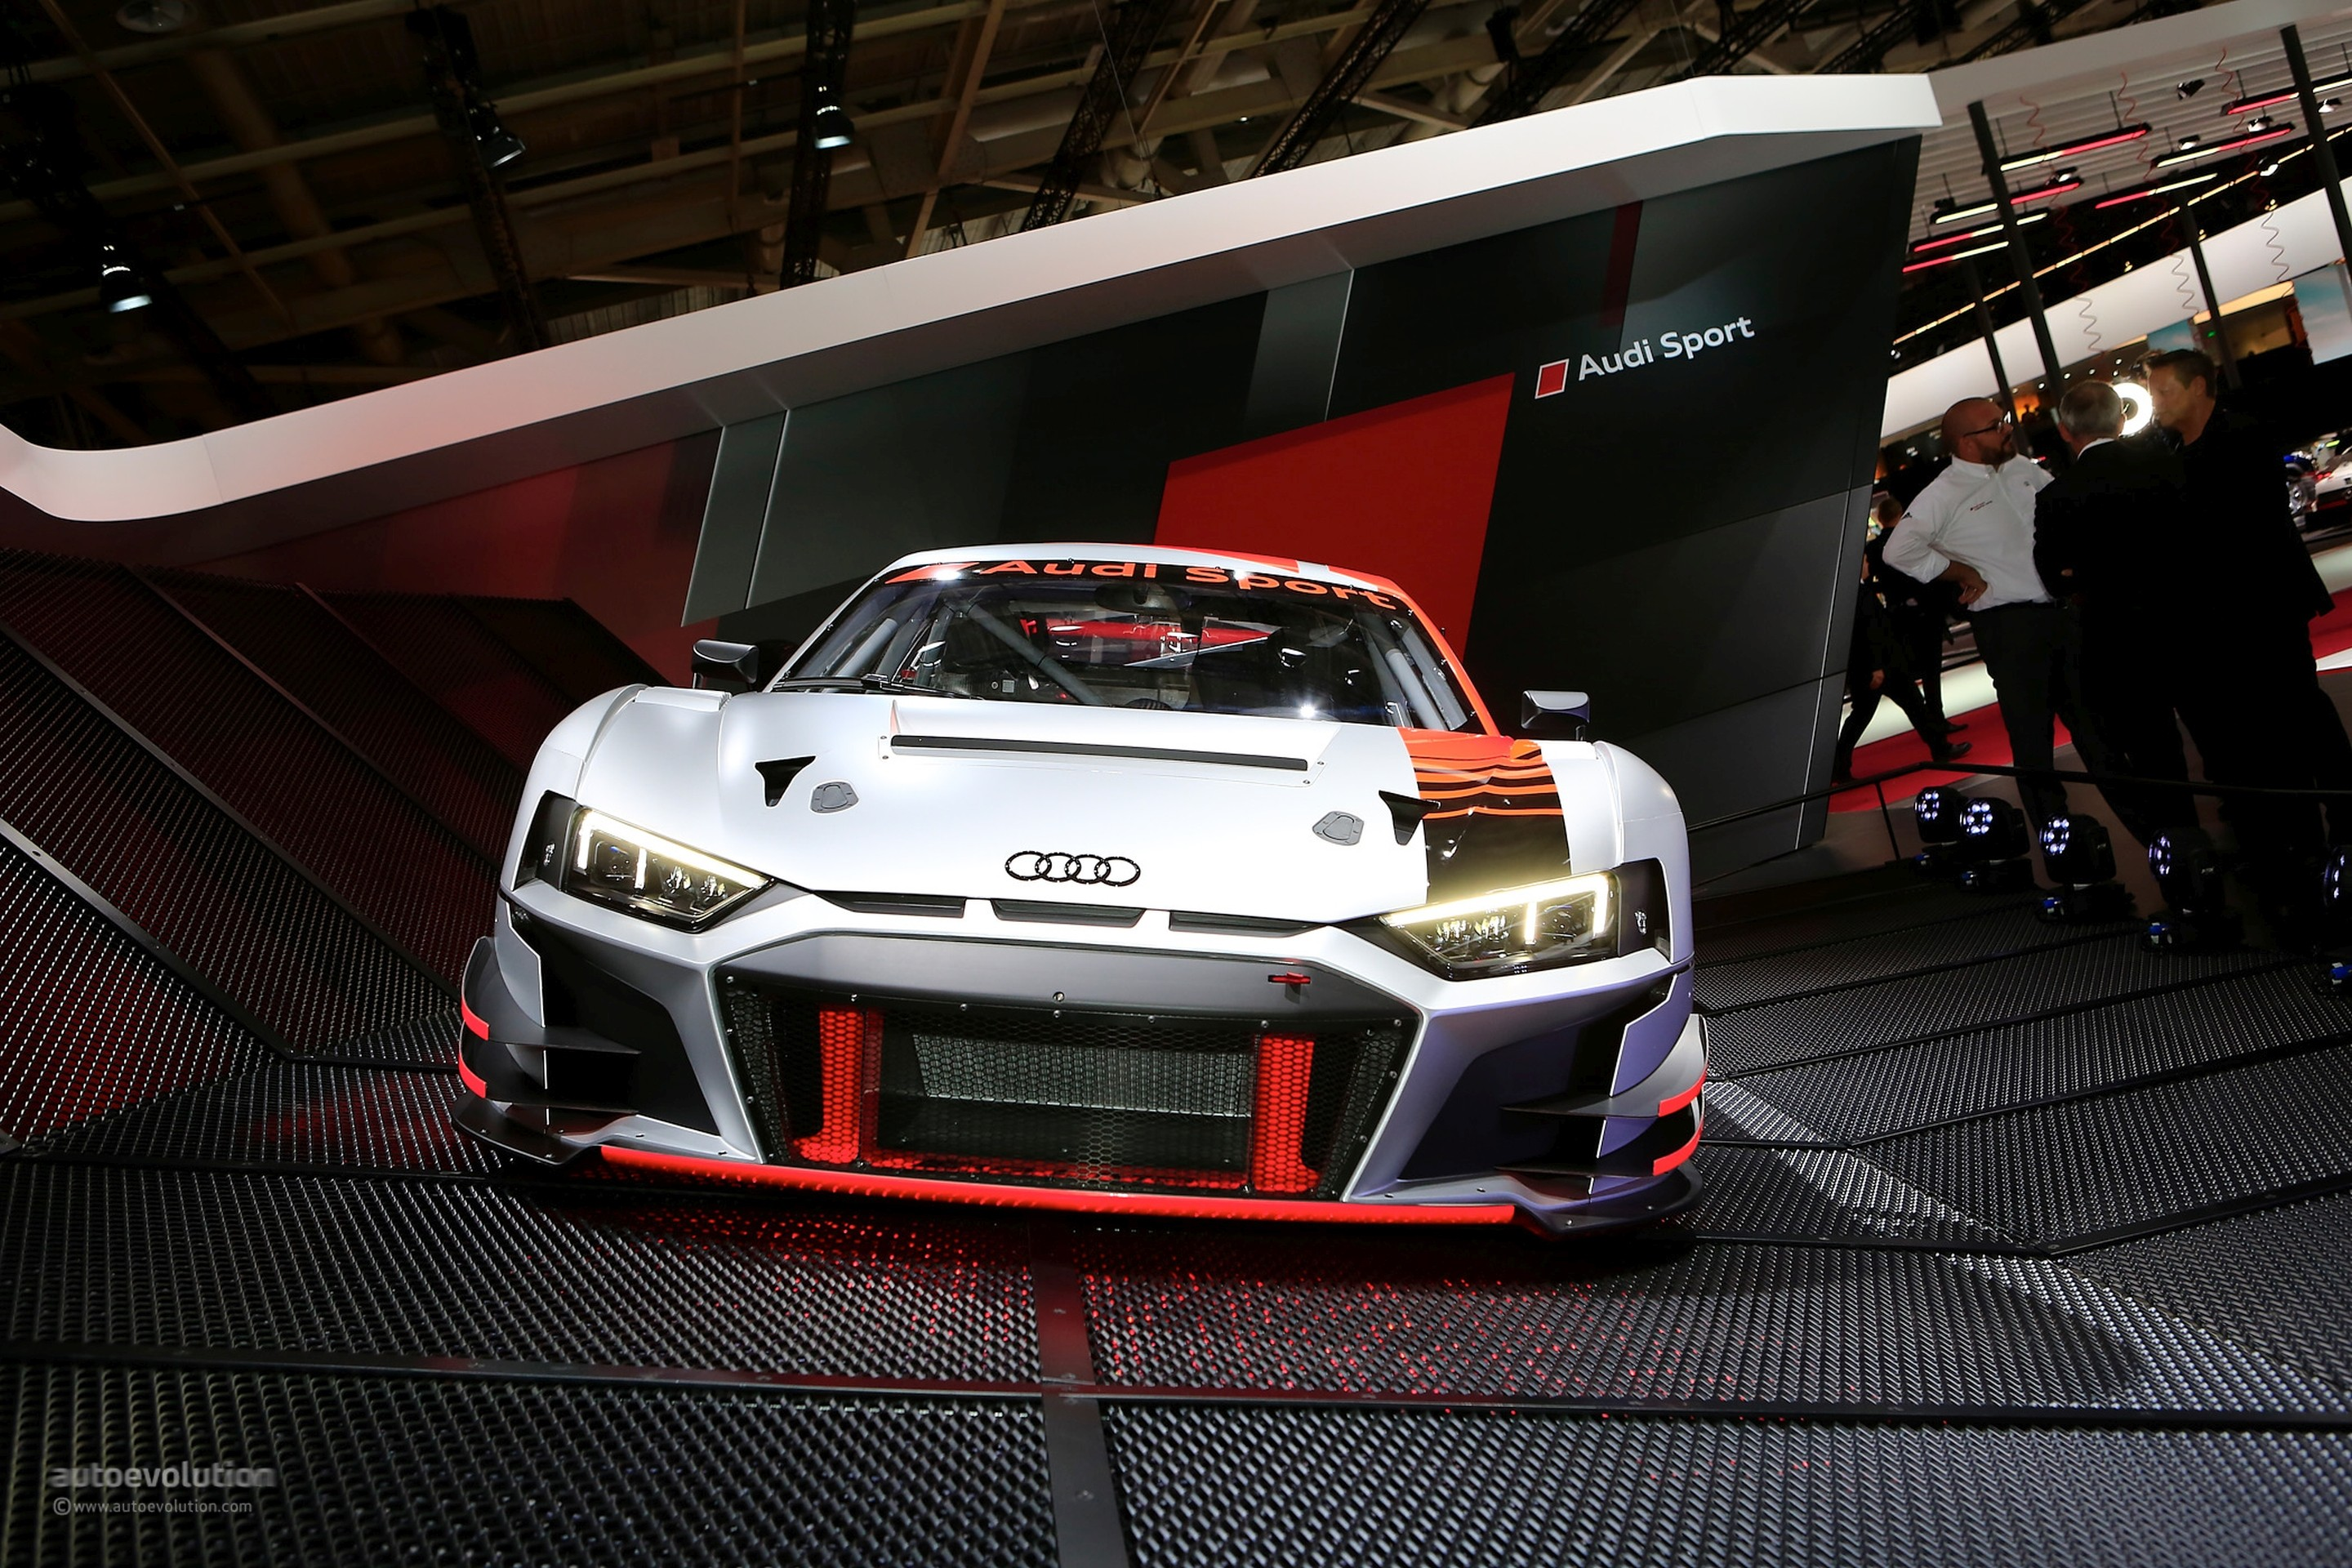 2019 Audi R8 Lms Gt3 Racecar Costs 458000 But You Can Have It For